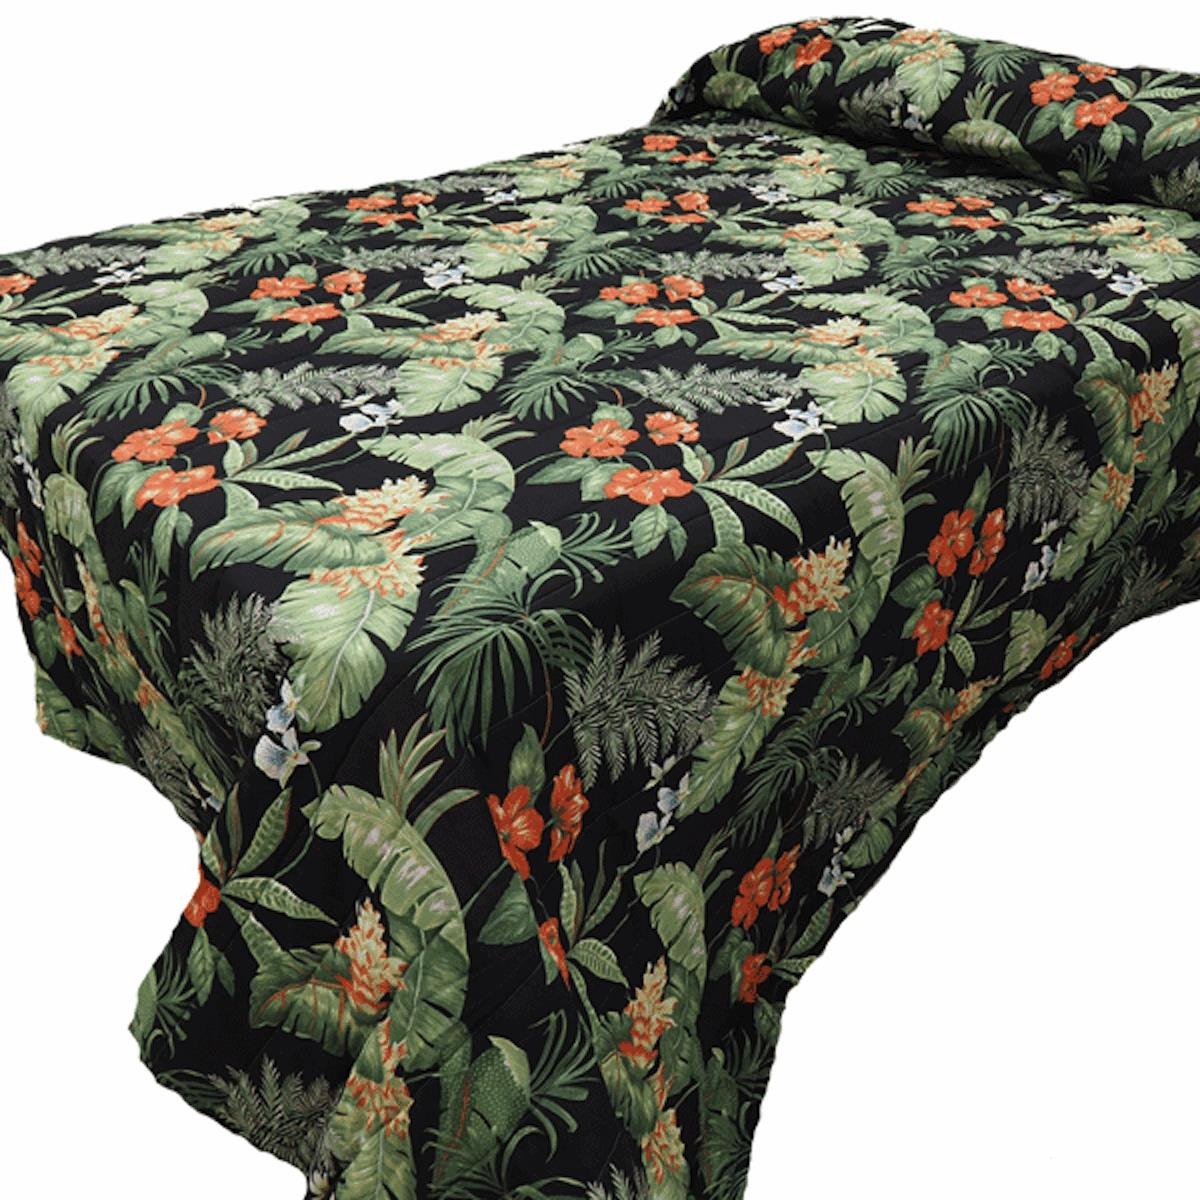 Black Tropical  Bedspread Collection -